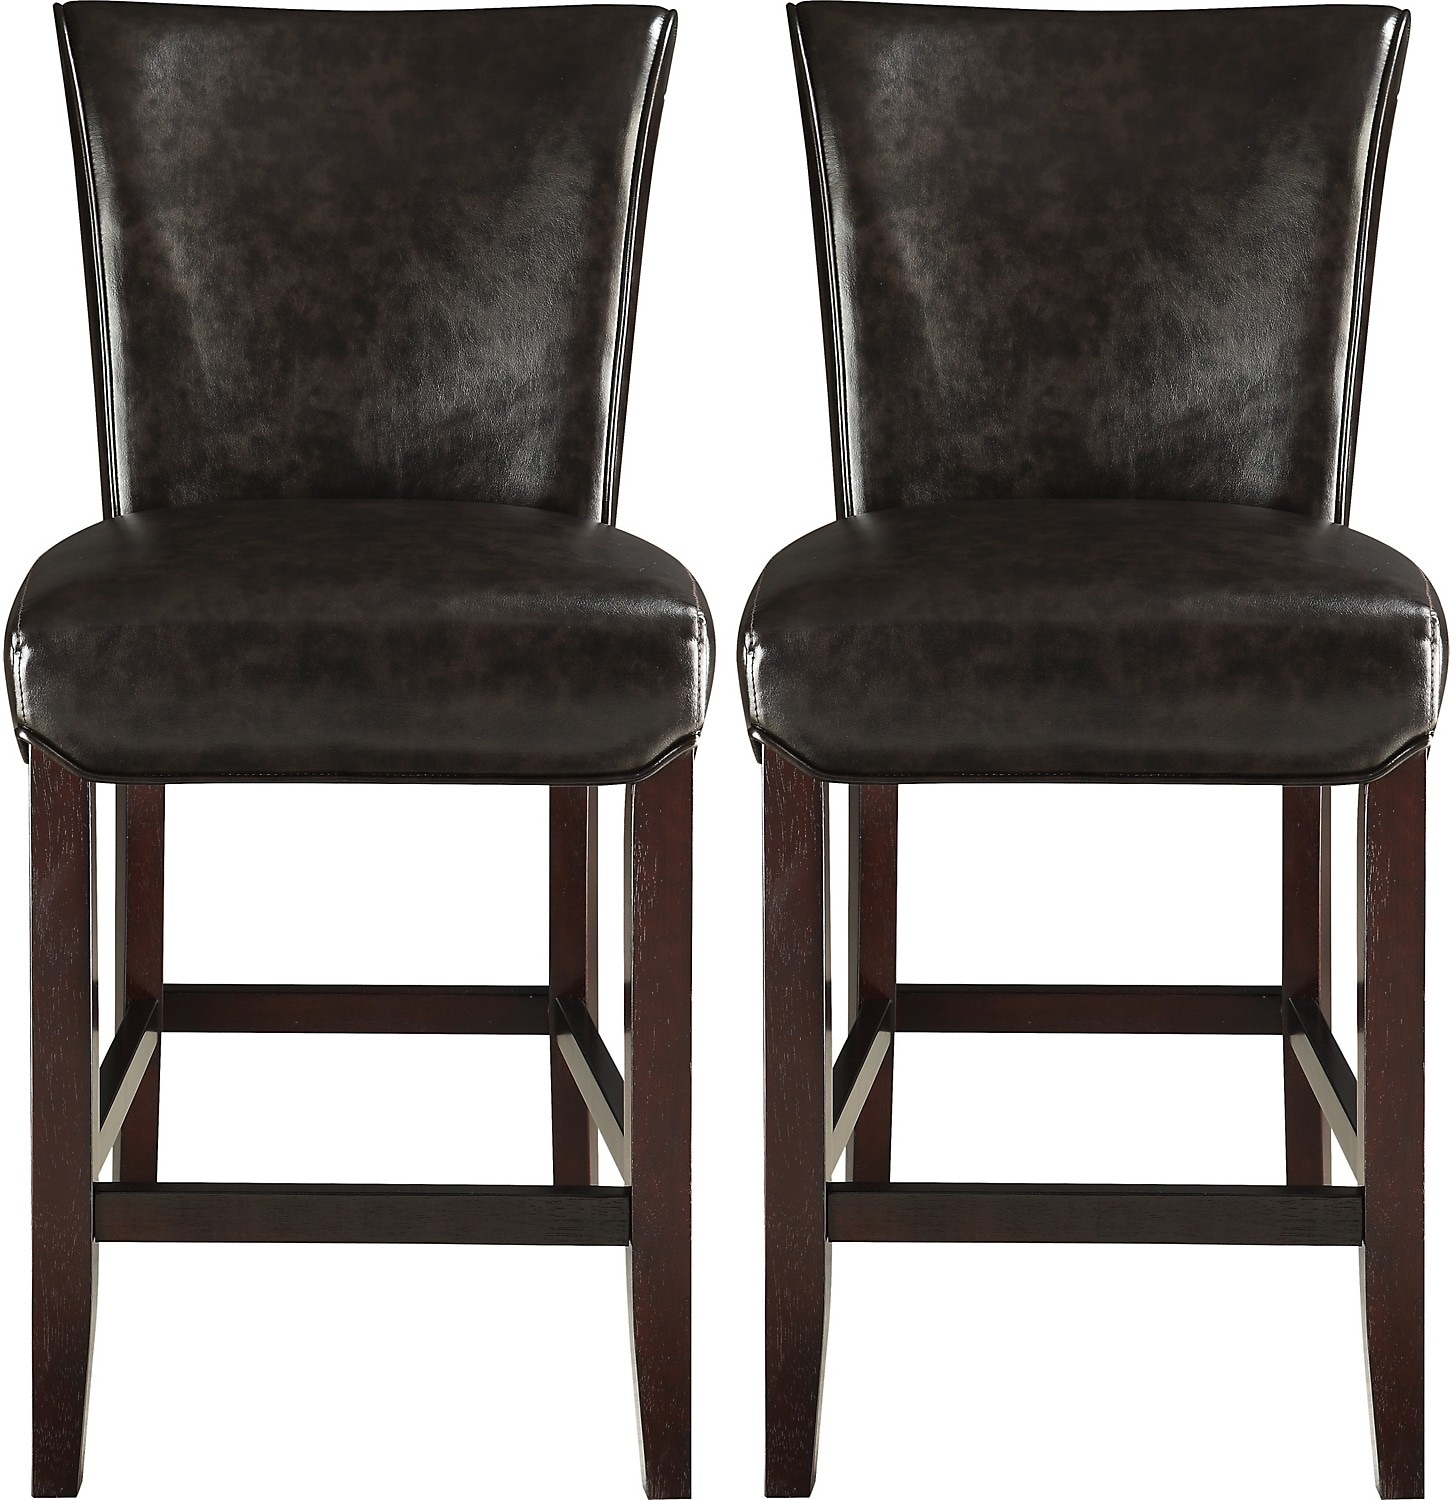 counter height bar stools the best deals for mar - Counter Height Chairs